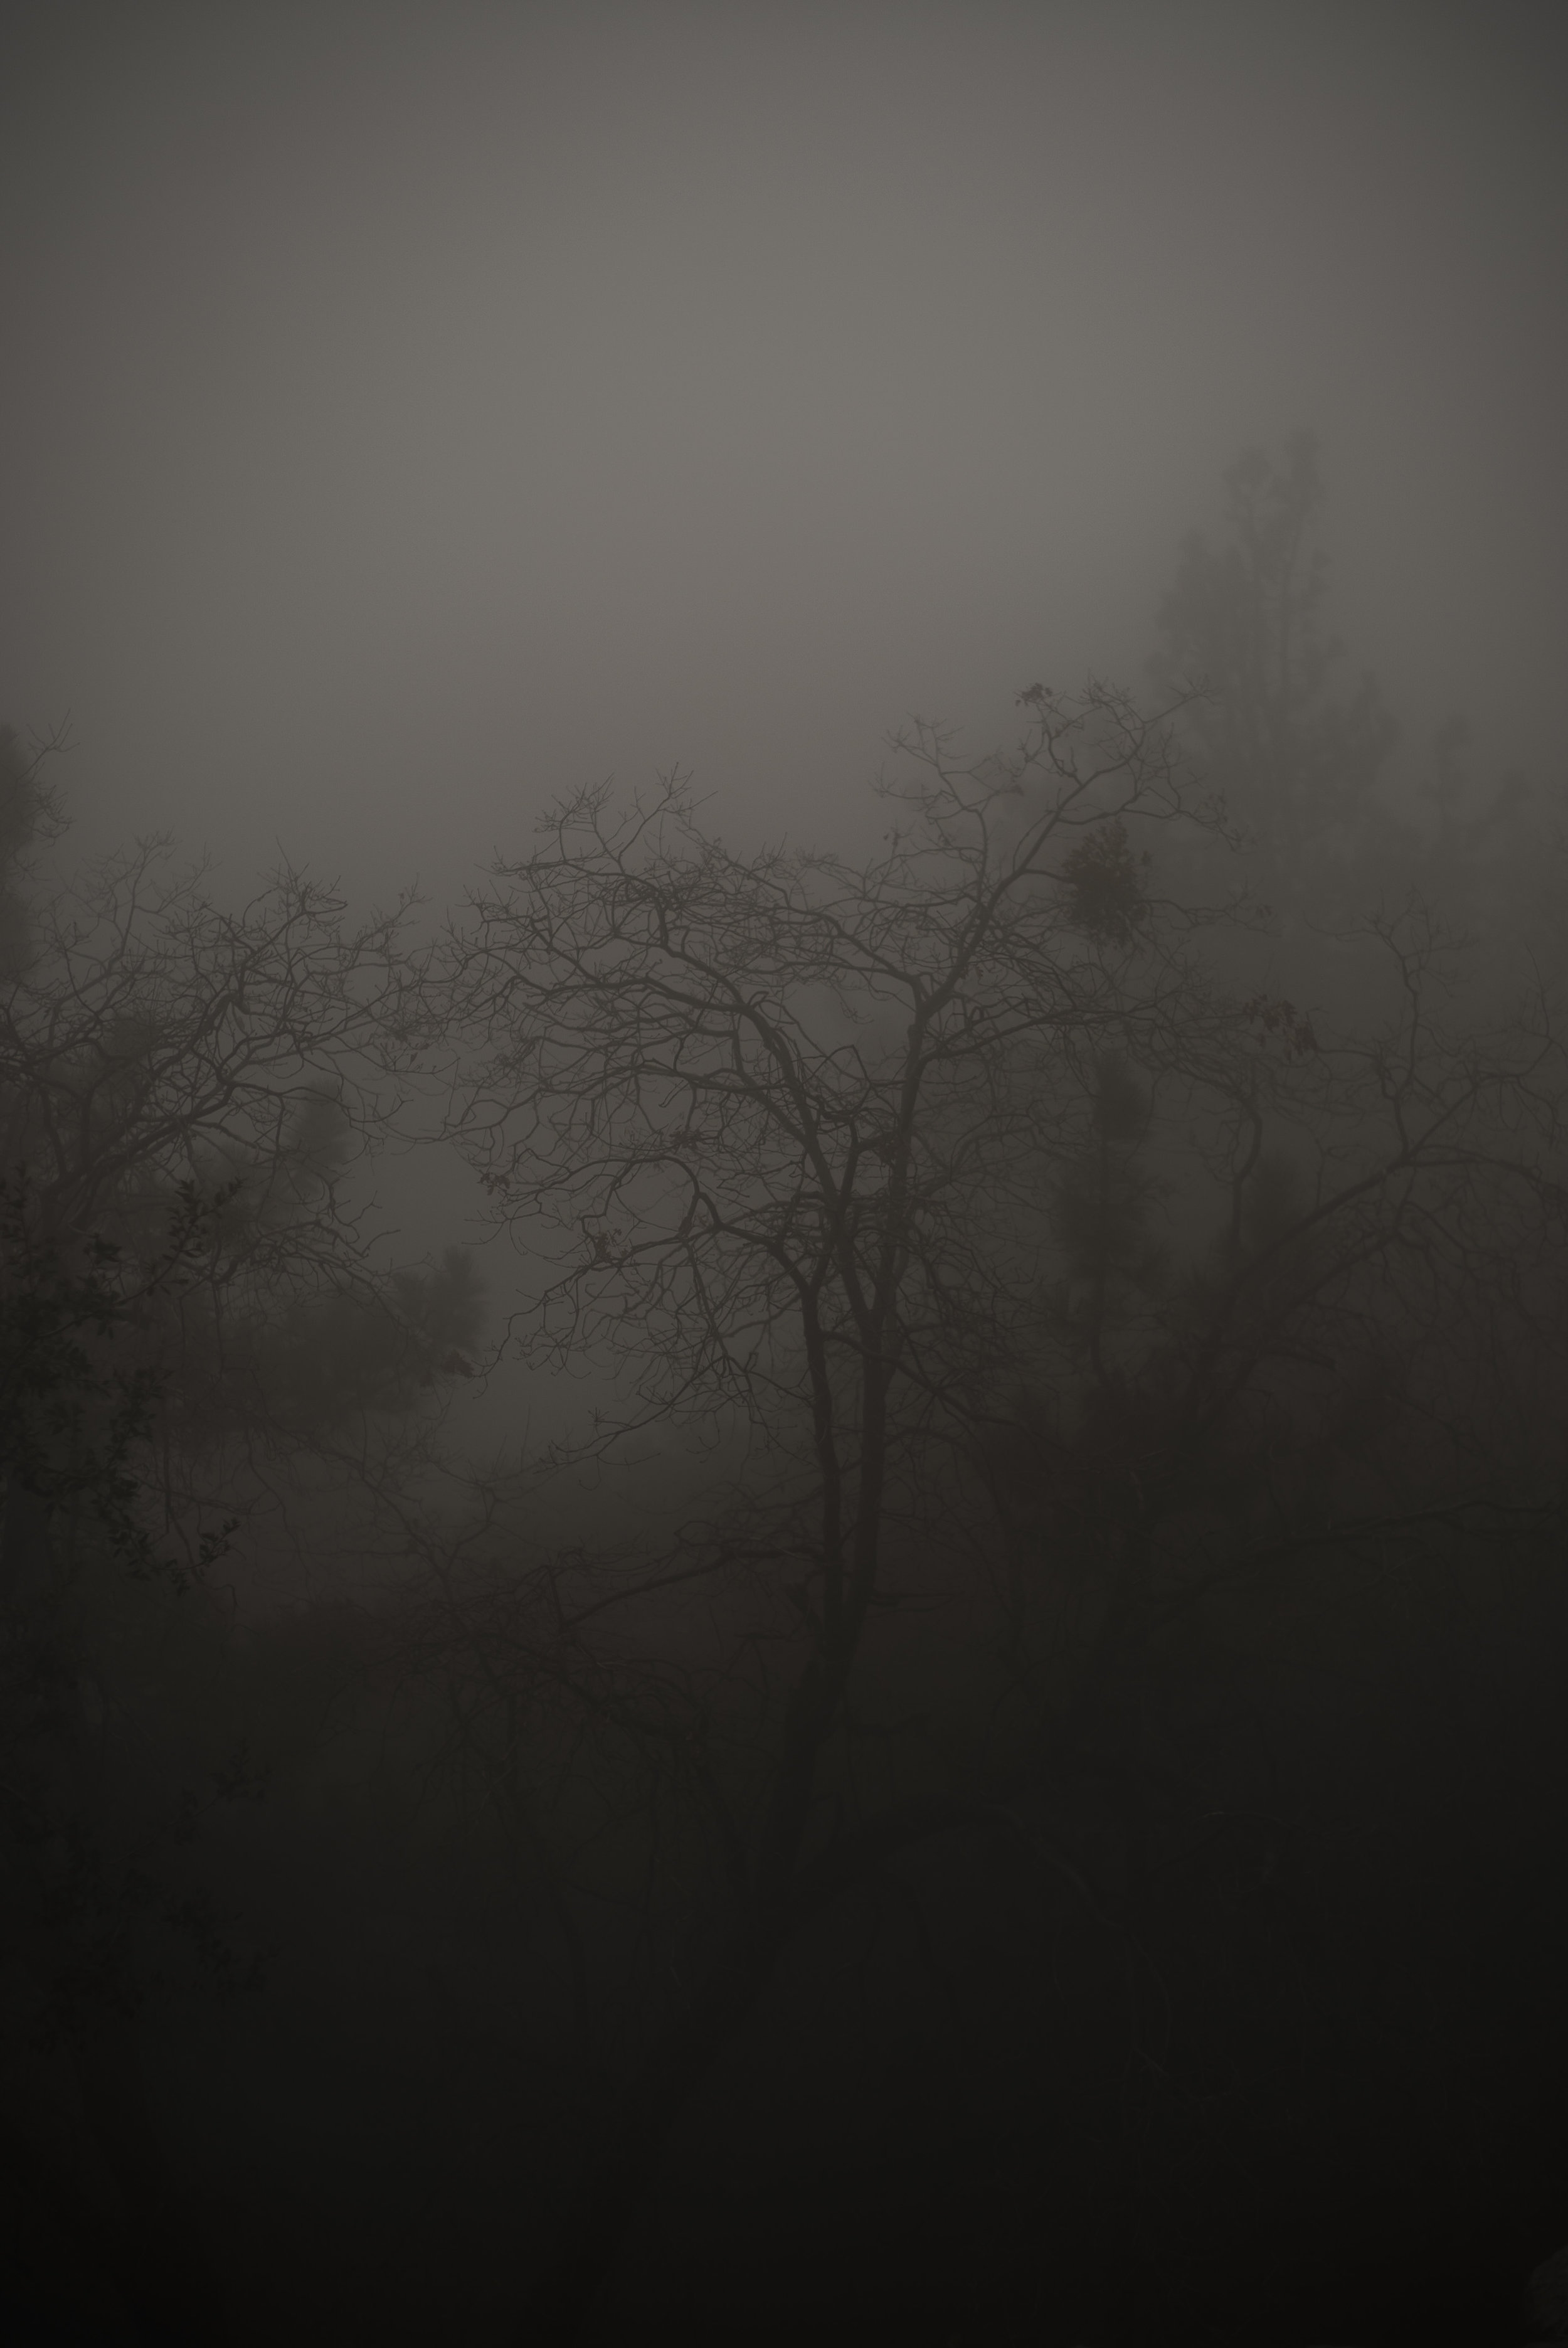 The myst hangs heavy on the mountain sometimes.